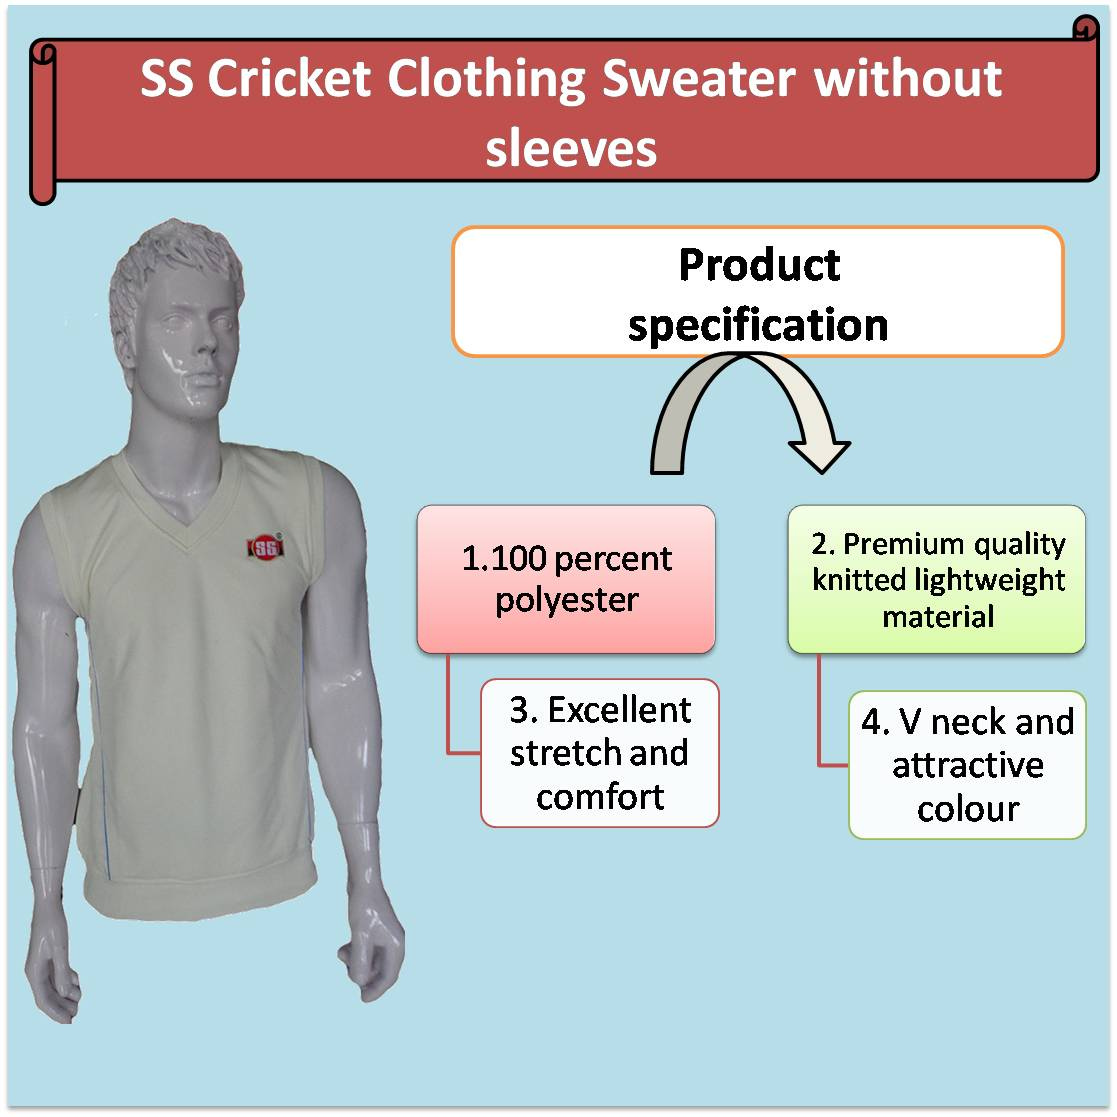 SS Cricket Clothing Sweater without sleeves